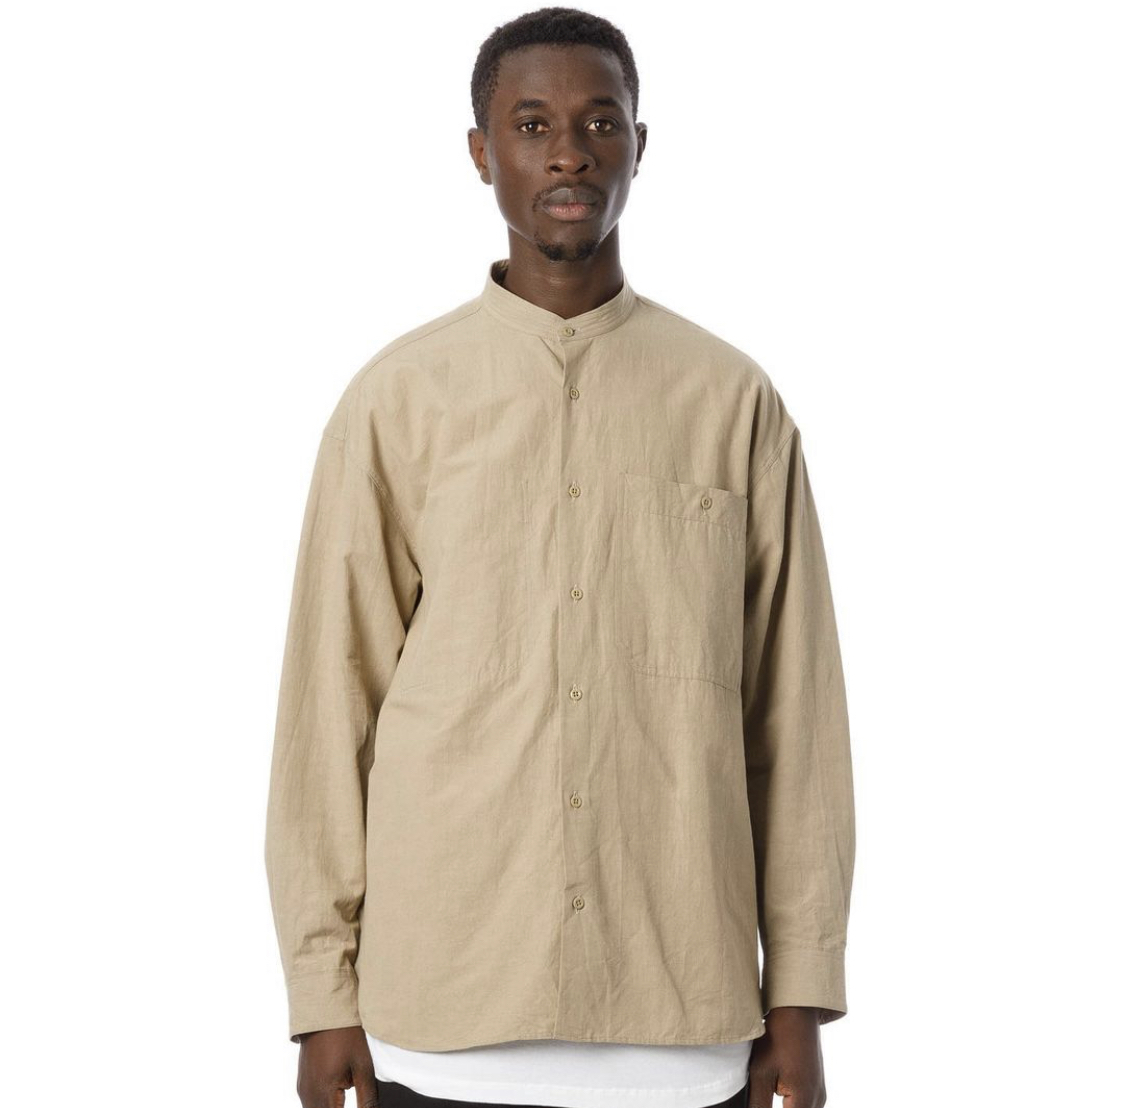 "SANDINISTA""Band Collar Cotton Linen Military Shirt\""_d0101000_16002995.jpeg"